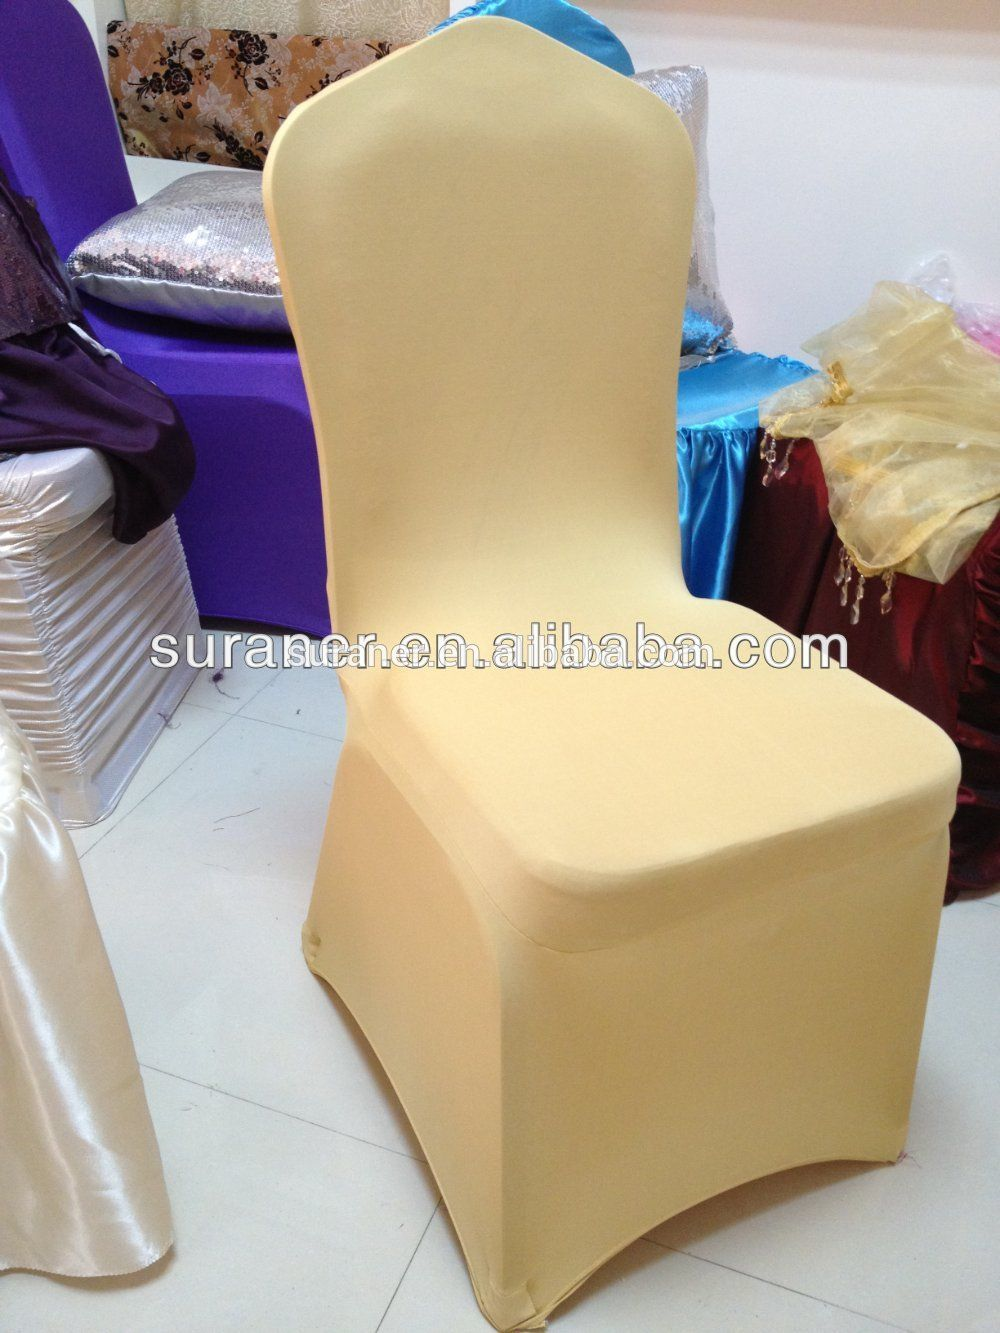 Decorative Chair Covers For Sale Most Expensive Auction High End Promotion Spandex Banquet Cover White Find Complete Details About